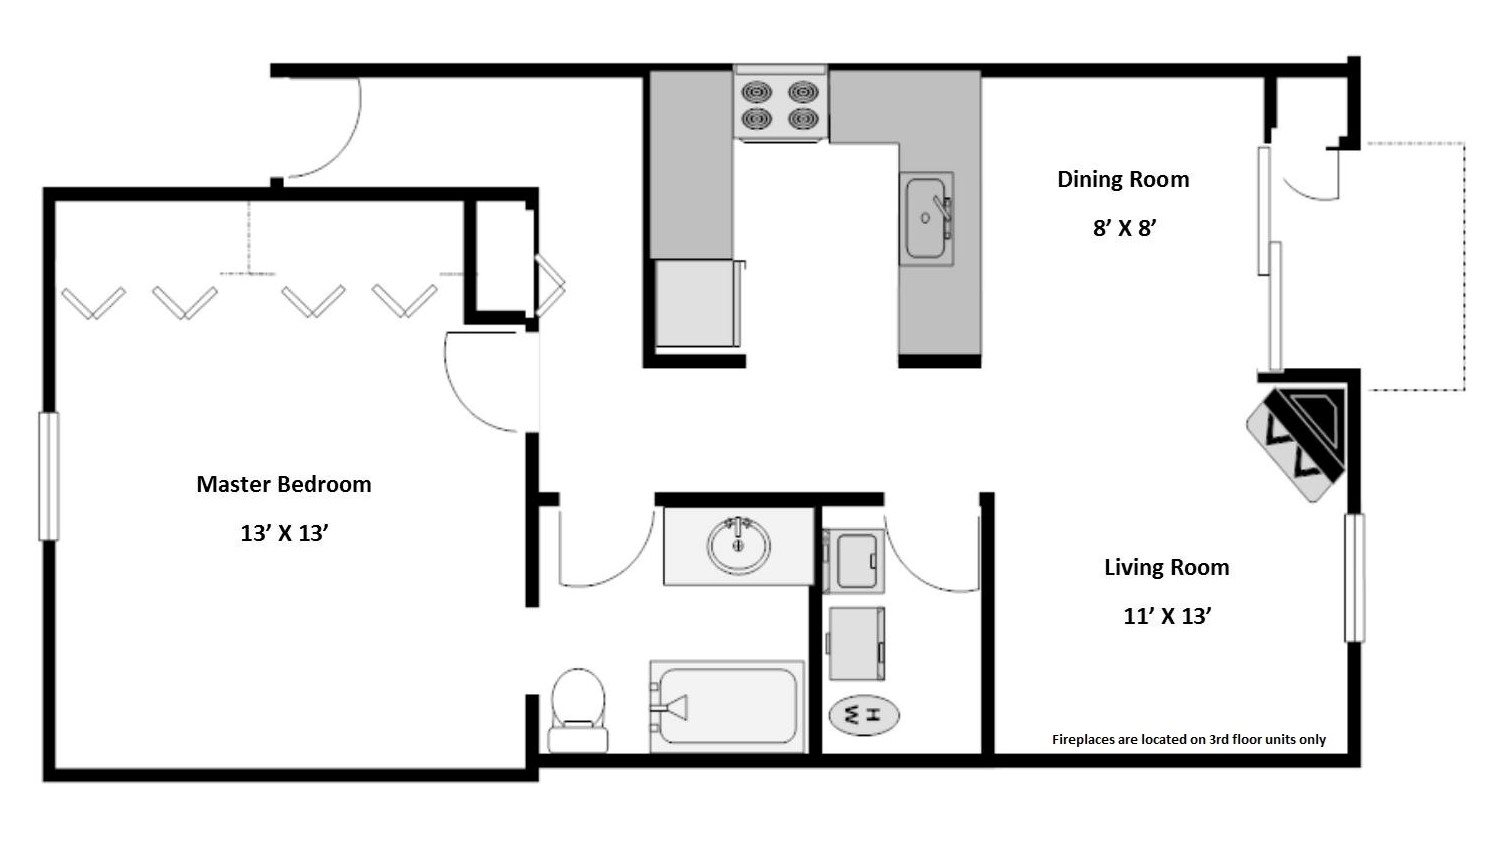 Floor Plans Of Pacific Pointe In Vancouver Wa